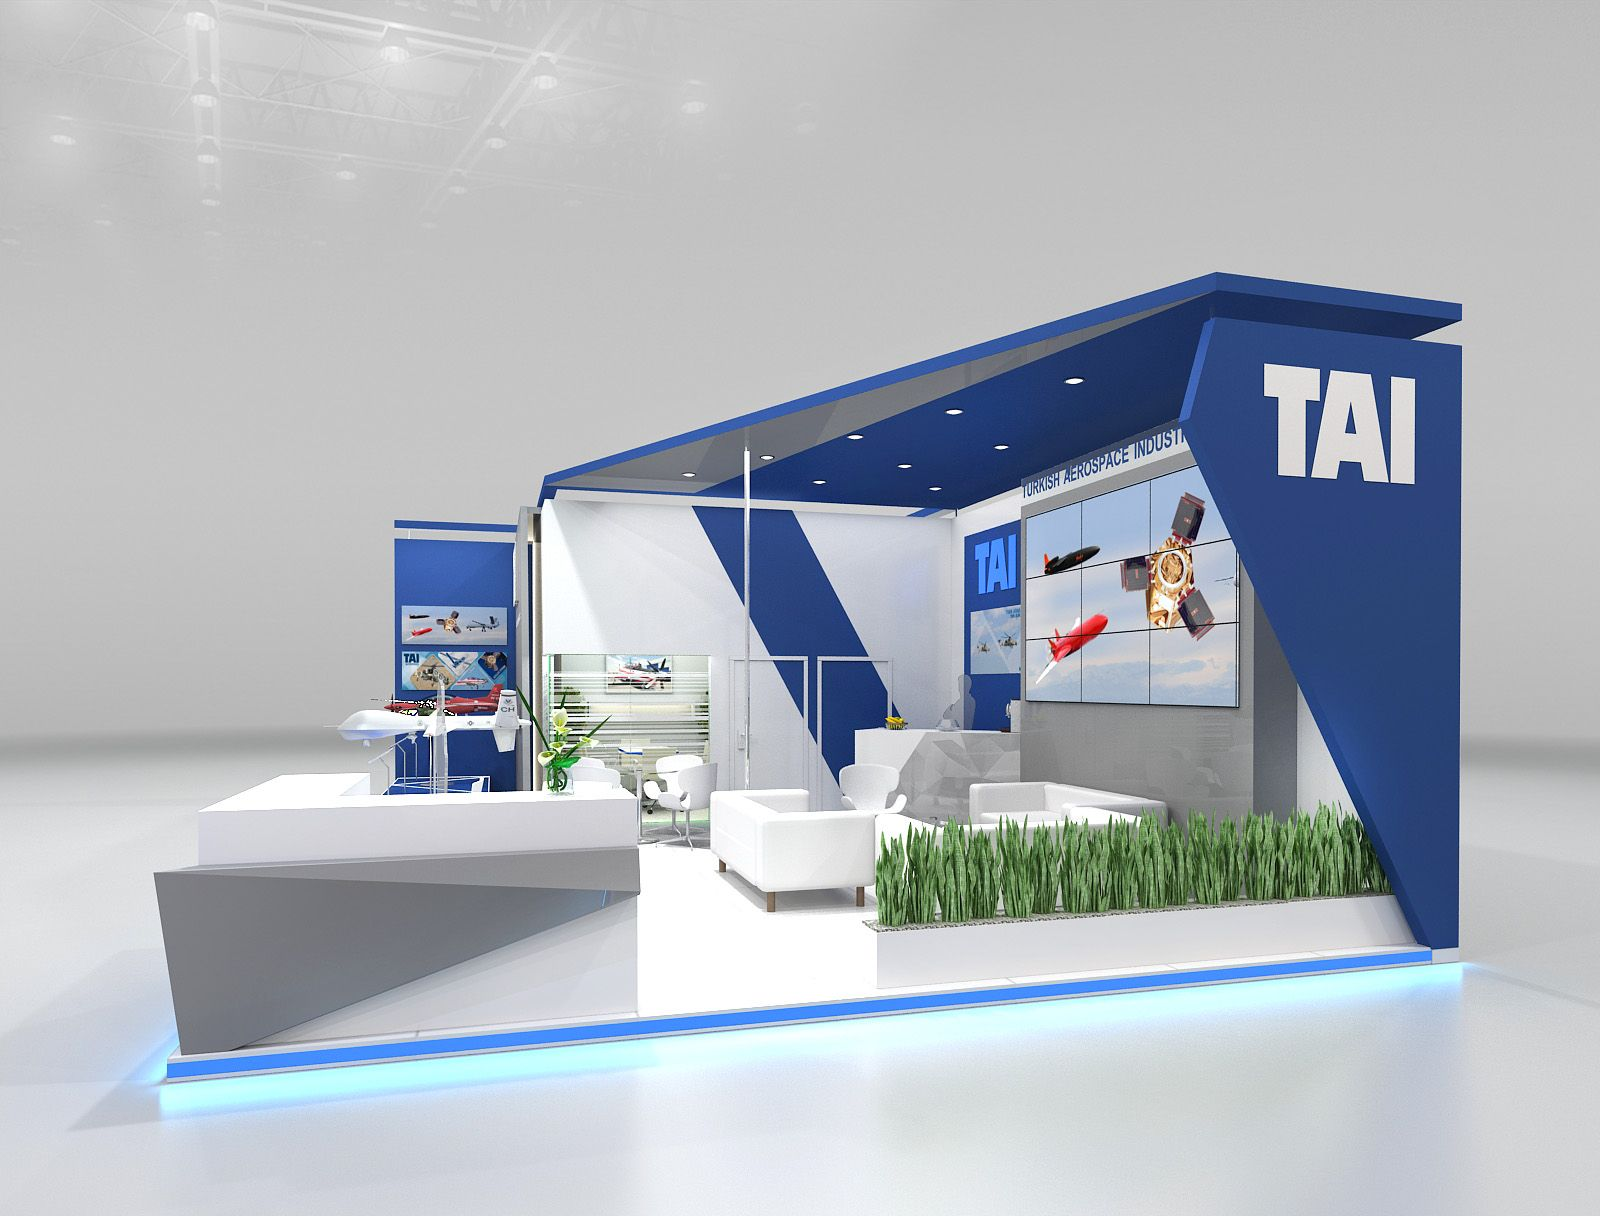 Exhibition Stand Design Sample : Tai by ivan kaplin at coroflot noman pinterest